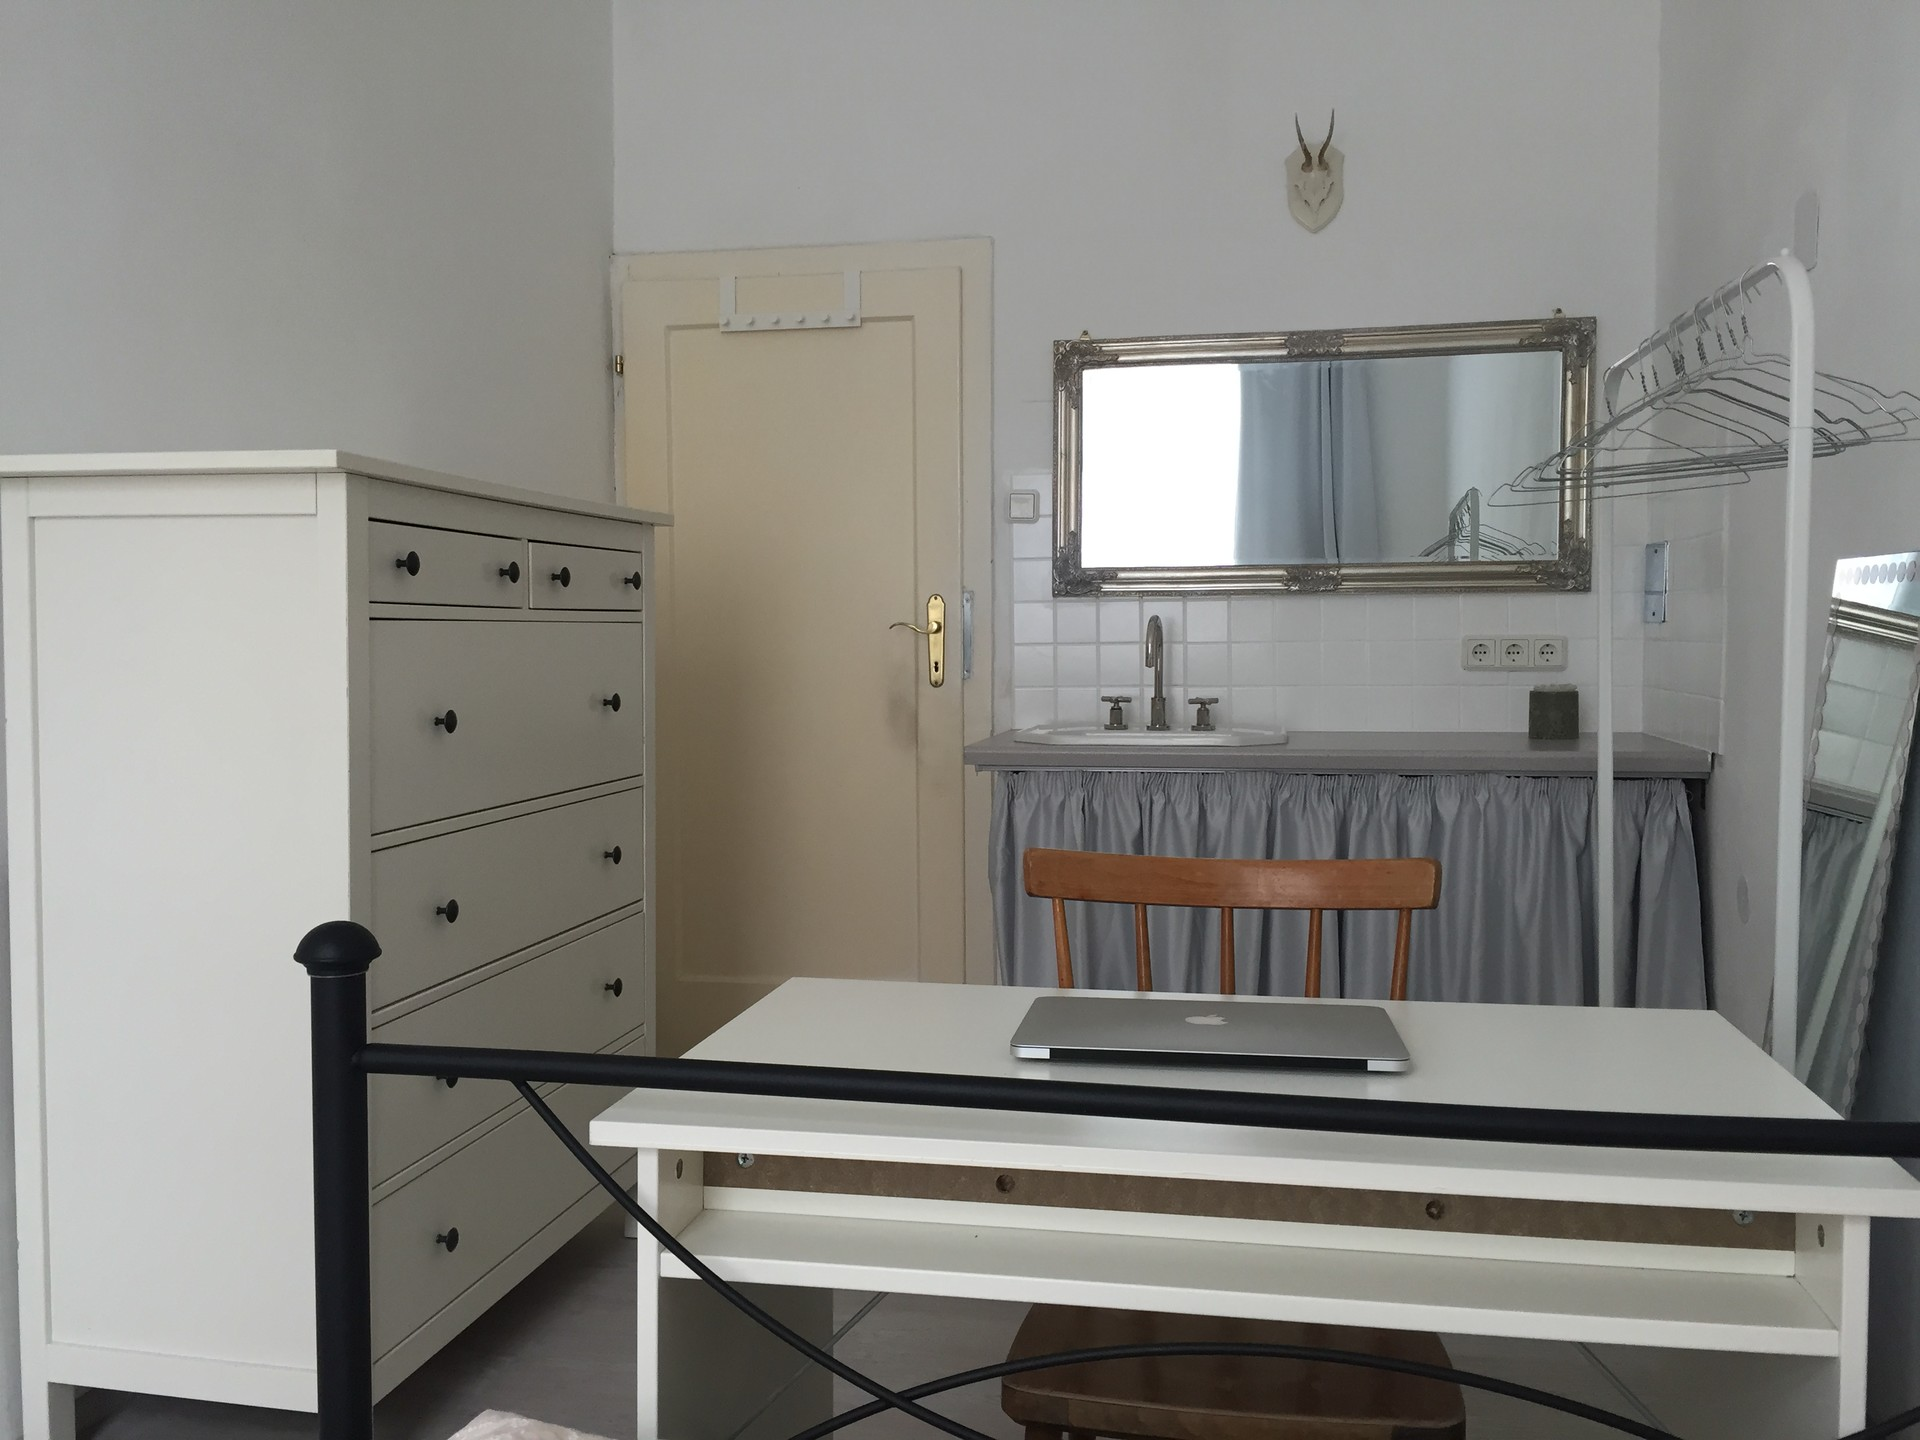 Pretty Room Free From The 1rst September 2017 Room With Sink Room For Rent